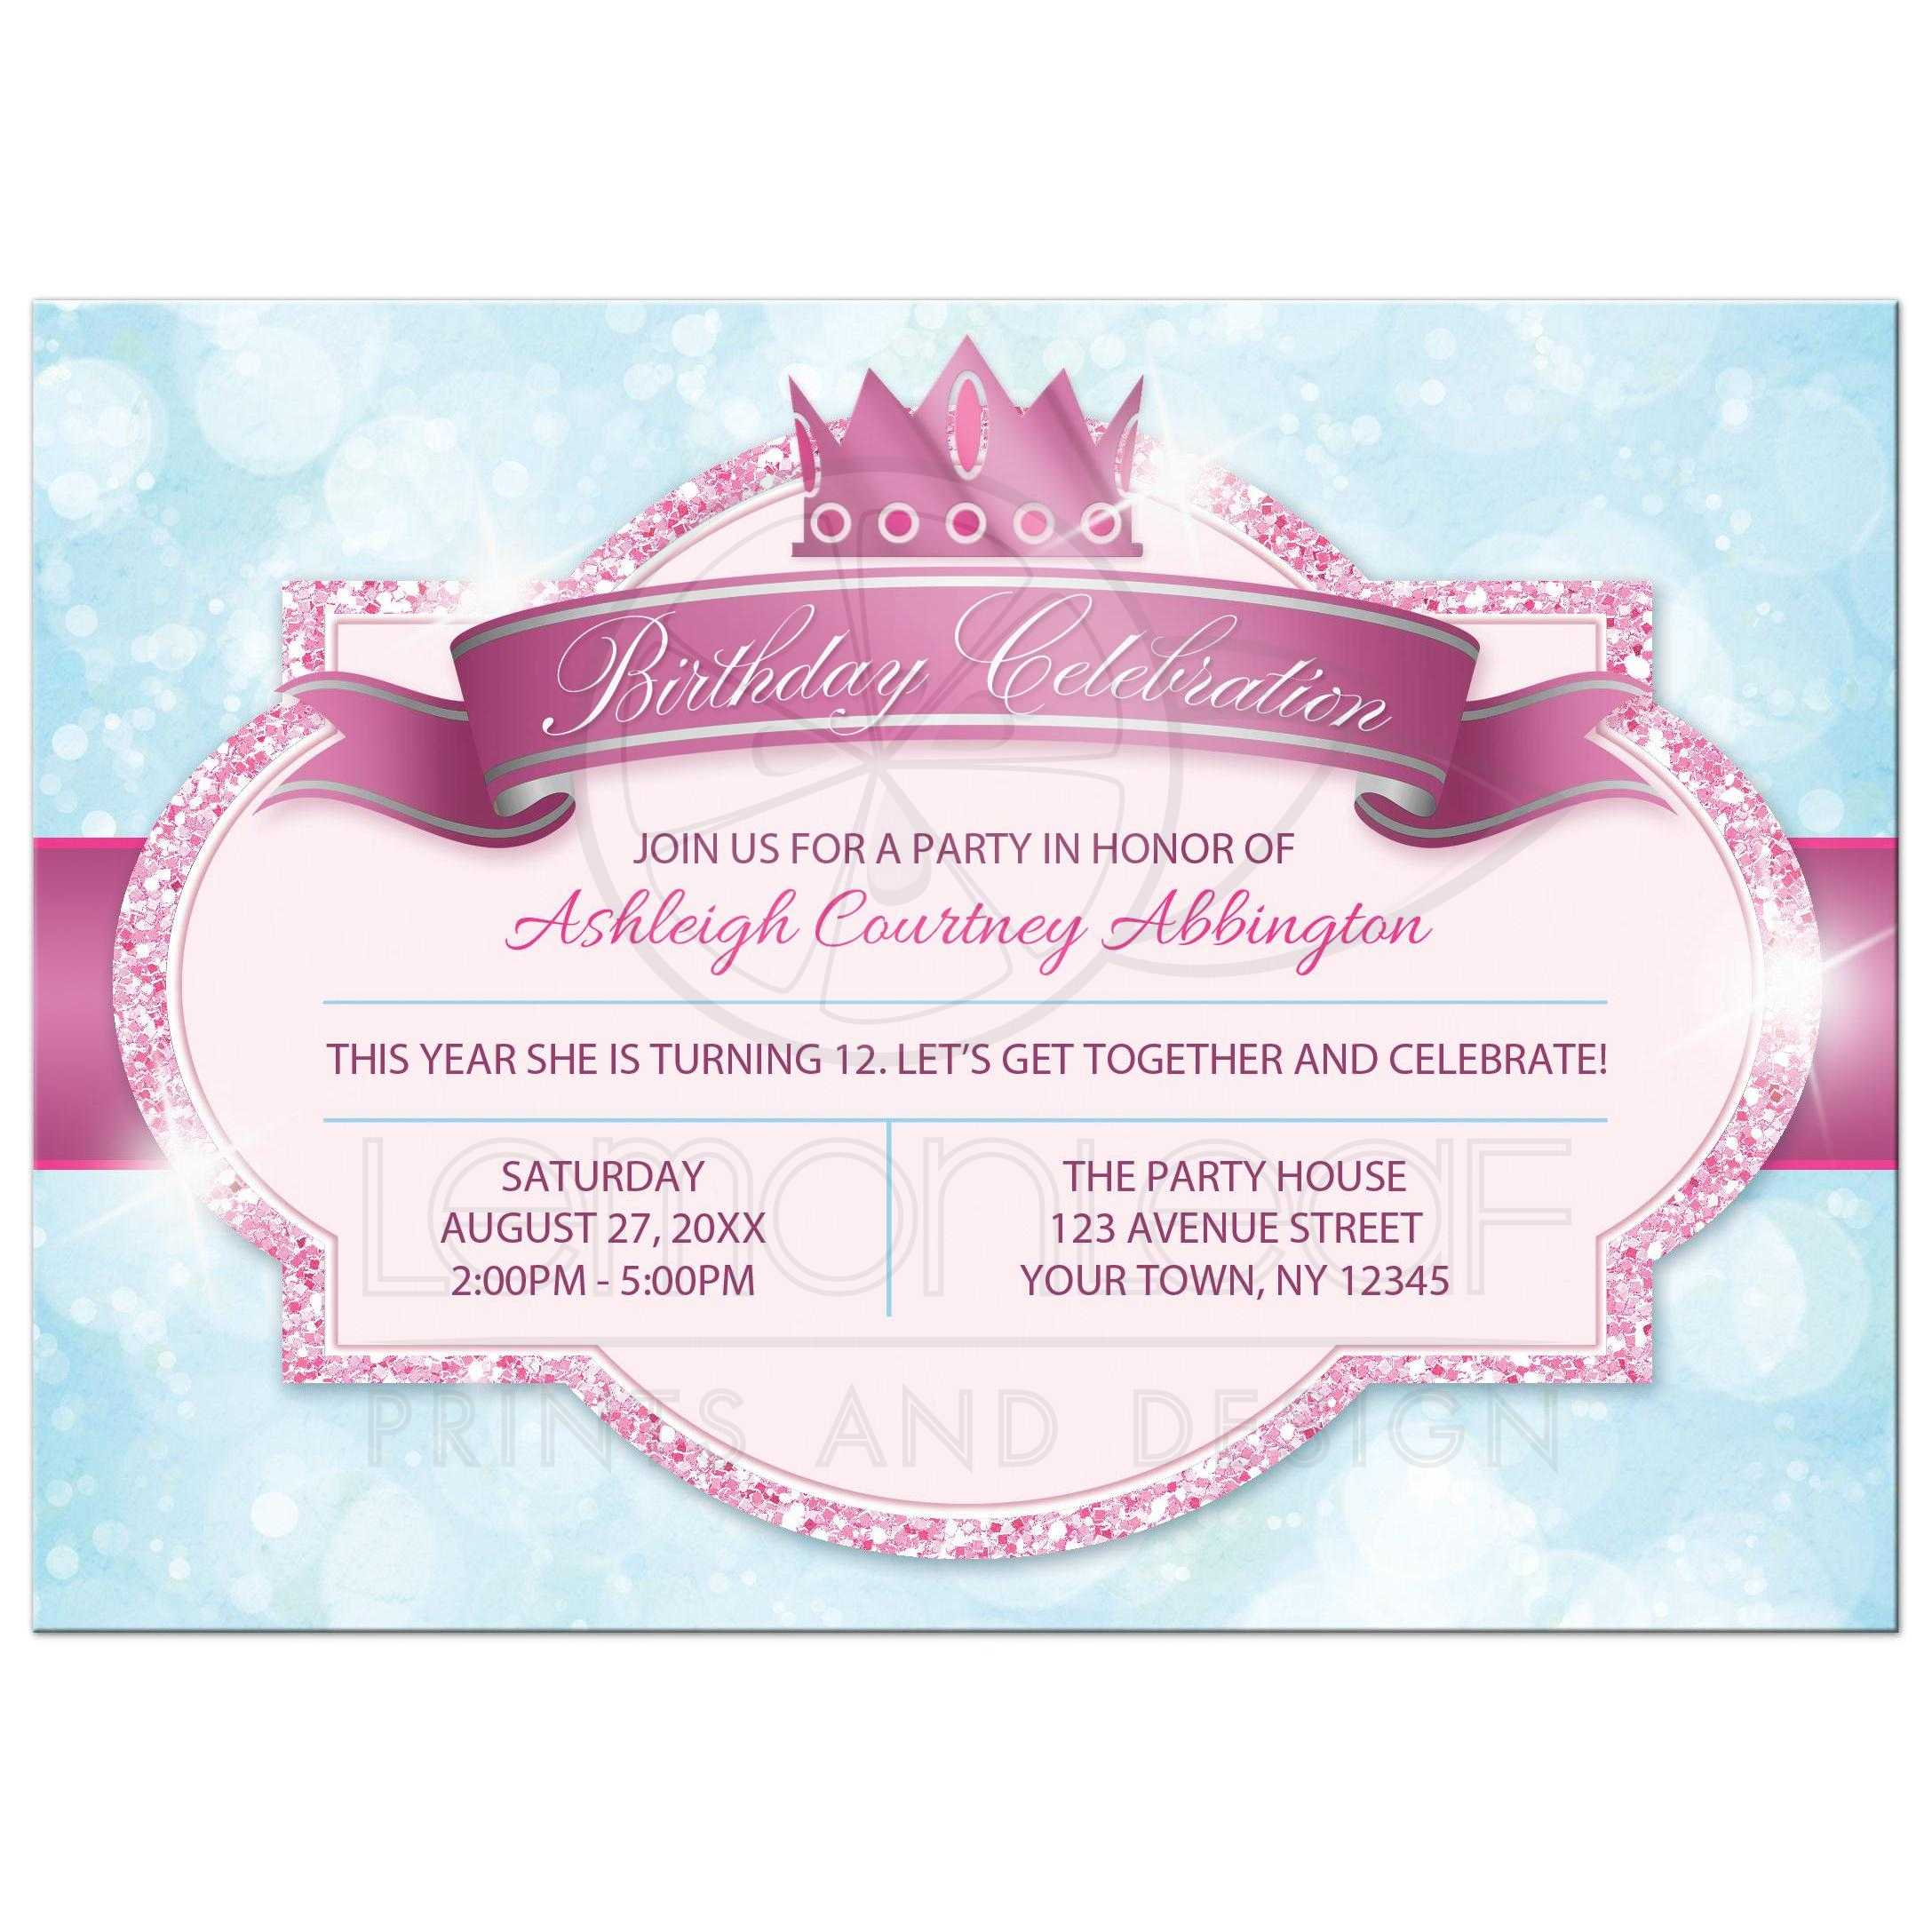 Birthday party invitations royal princess pink glitter blue girls filmwisefo